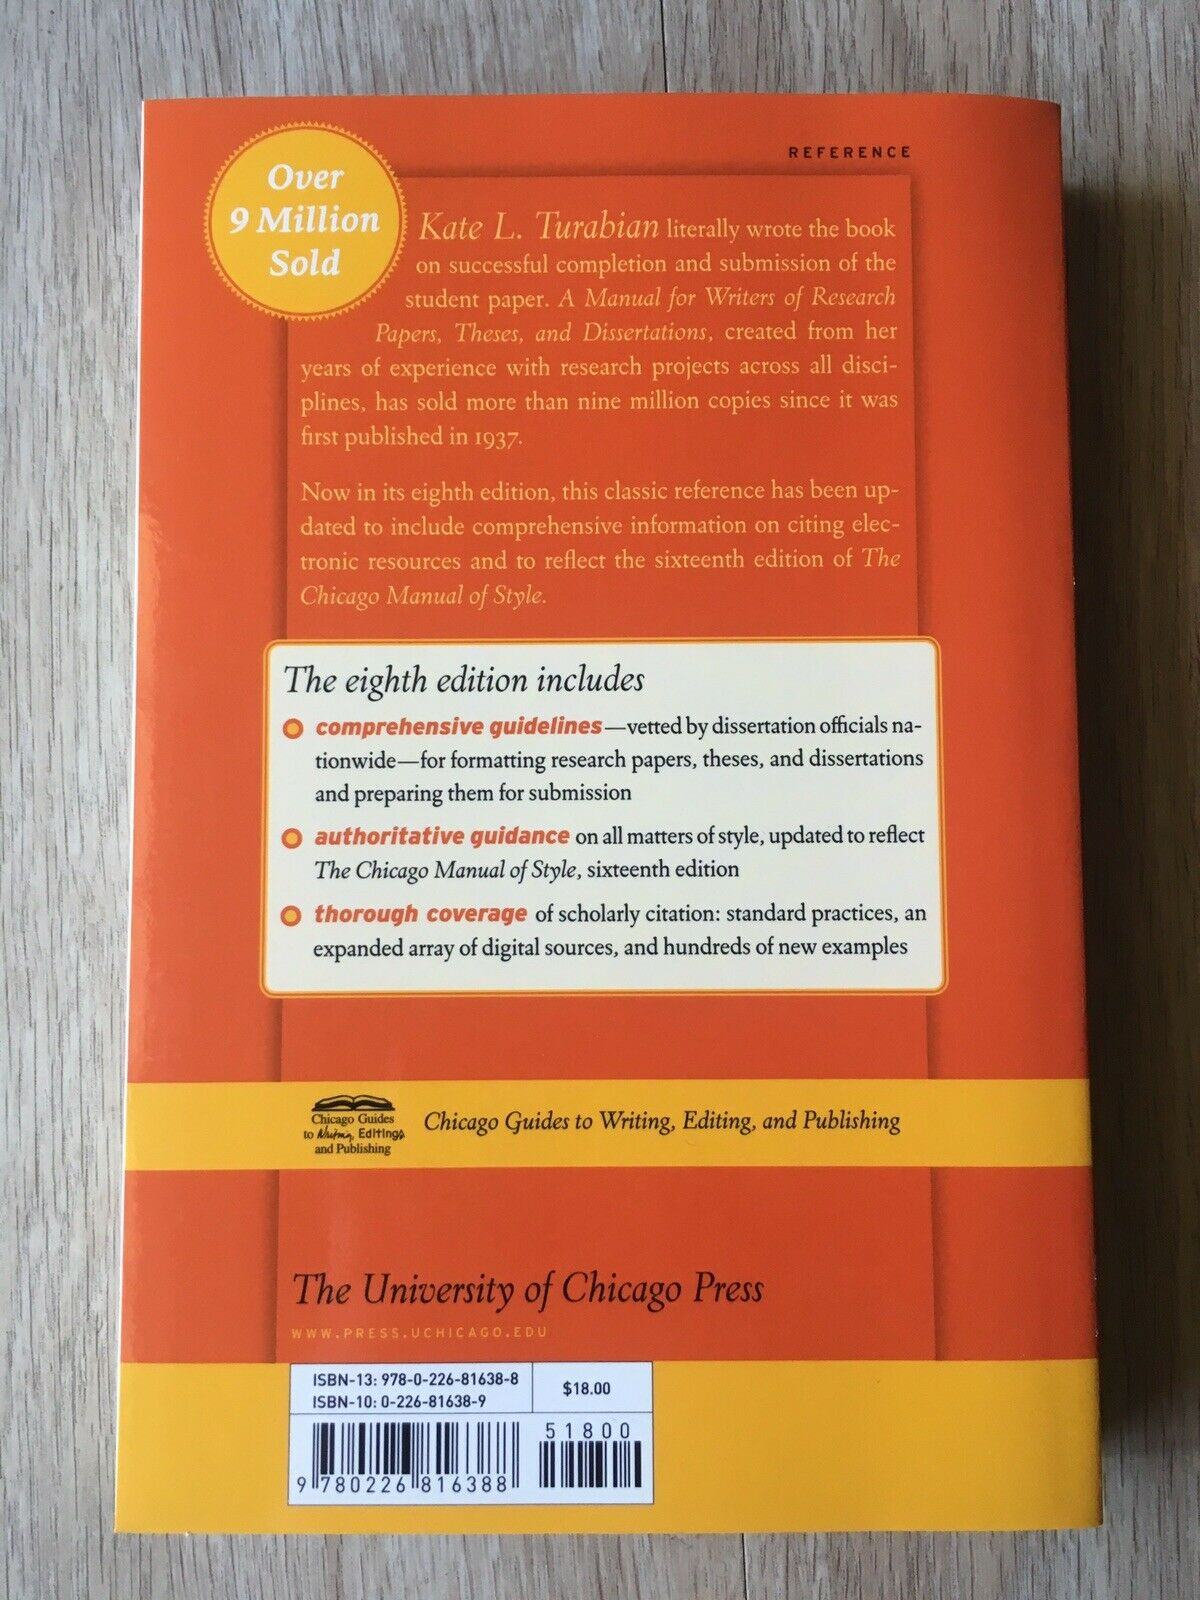 011 Research Paper Manual For Writers Of Papers Theses And Dissertations S Sensational A Ed. 8 Turabian Ninth Edition Full